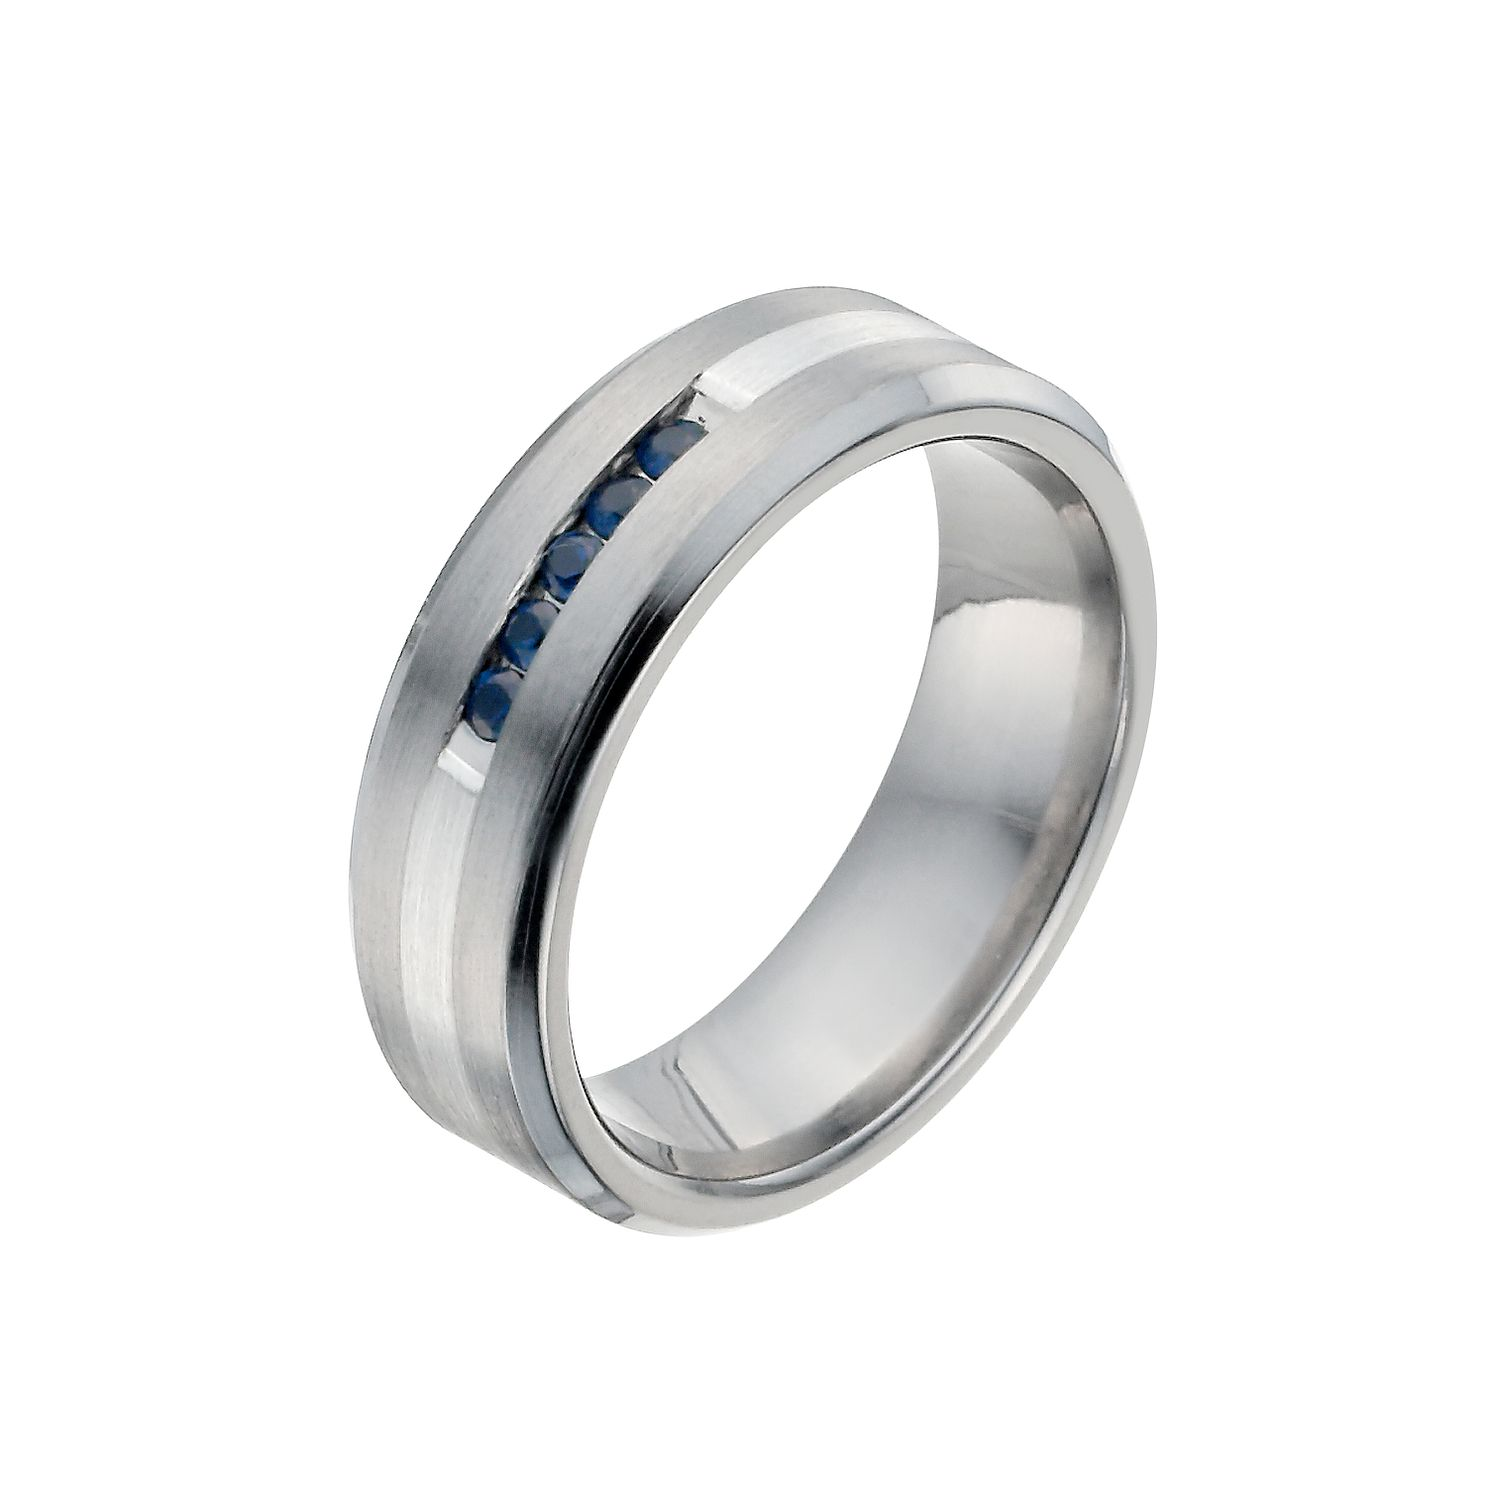 band amazon wedding com oxford plain s ivy dp men sizes fit titanium comfort rings available ring